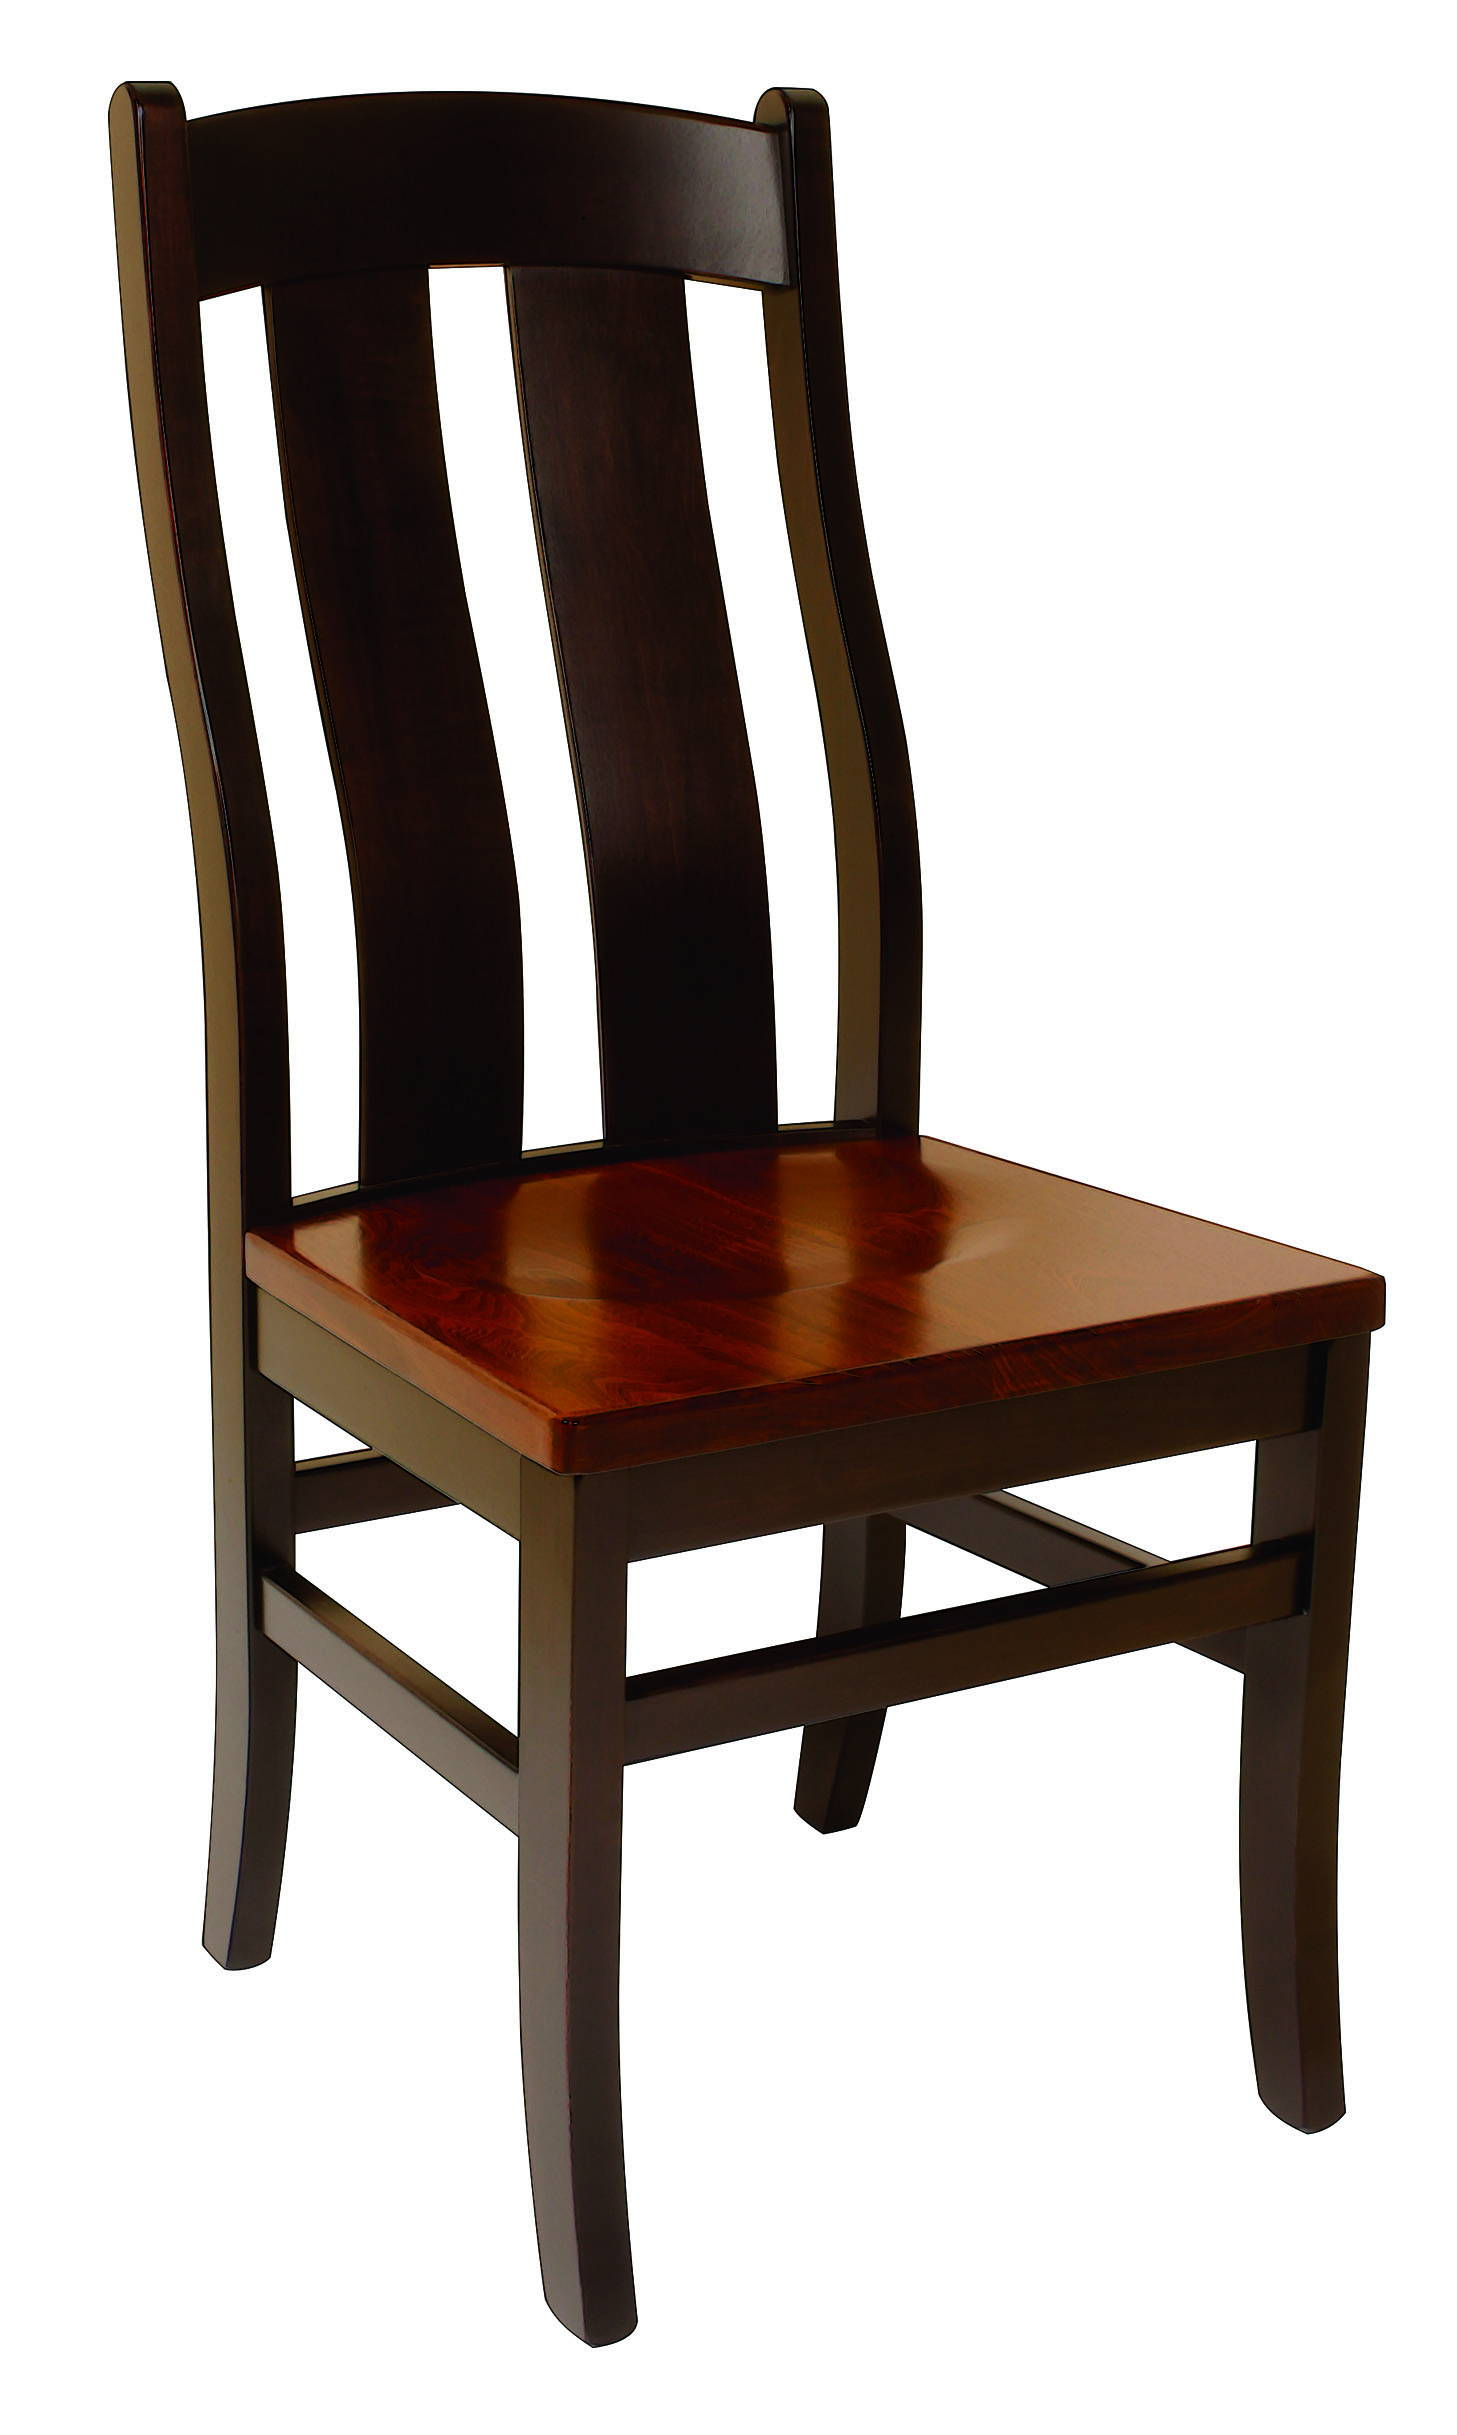 Arlington Solid Wood, Handcrafted Kitchen Chair or DIning Chair from Harvest Home Interiors Amish Furniture